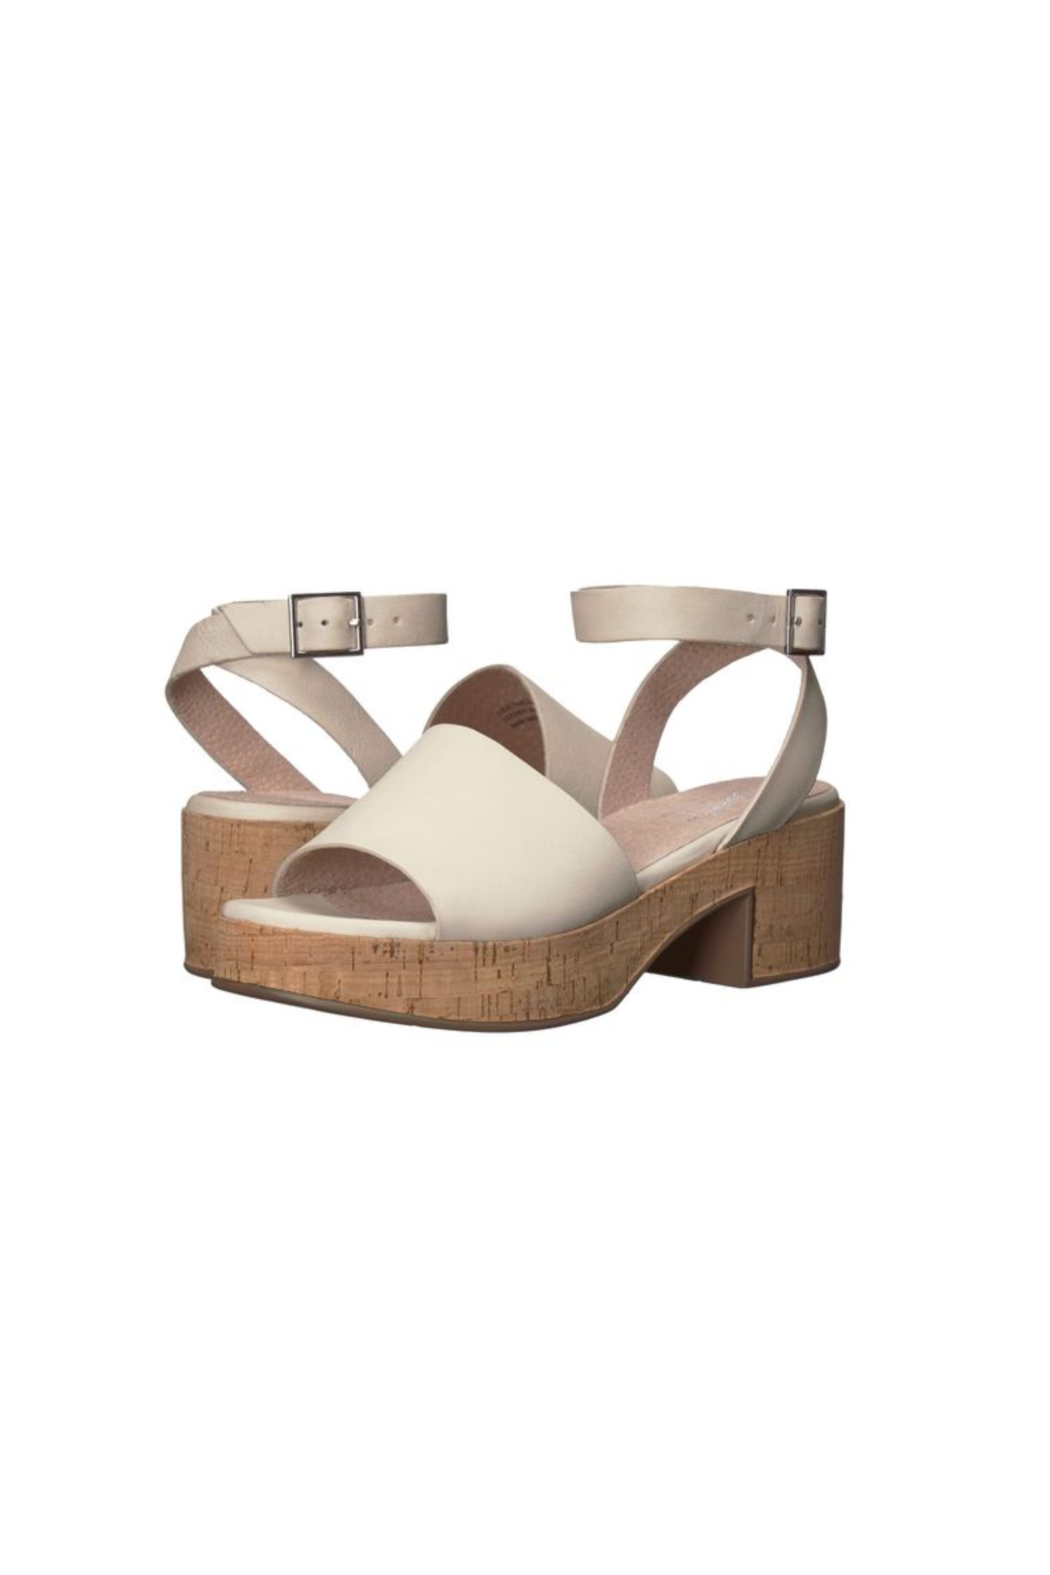 5d7e460ab97 Seychelles Calming Influence Platform Sandal - Front Cropped Image